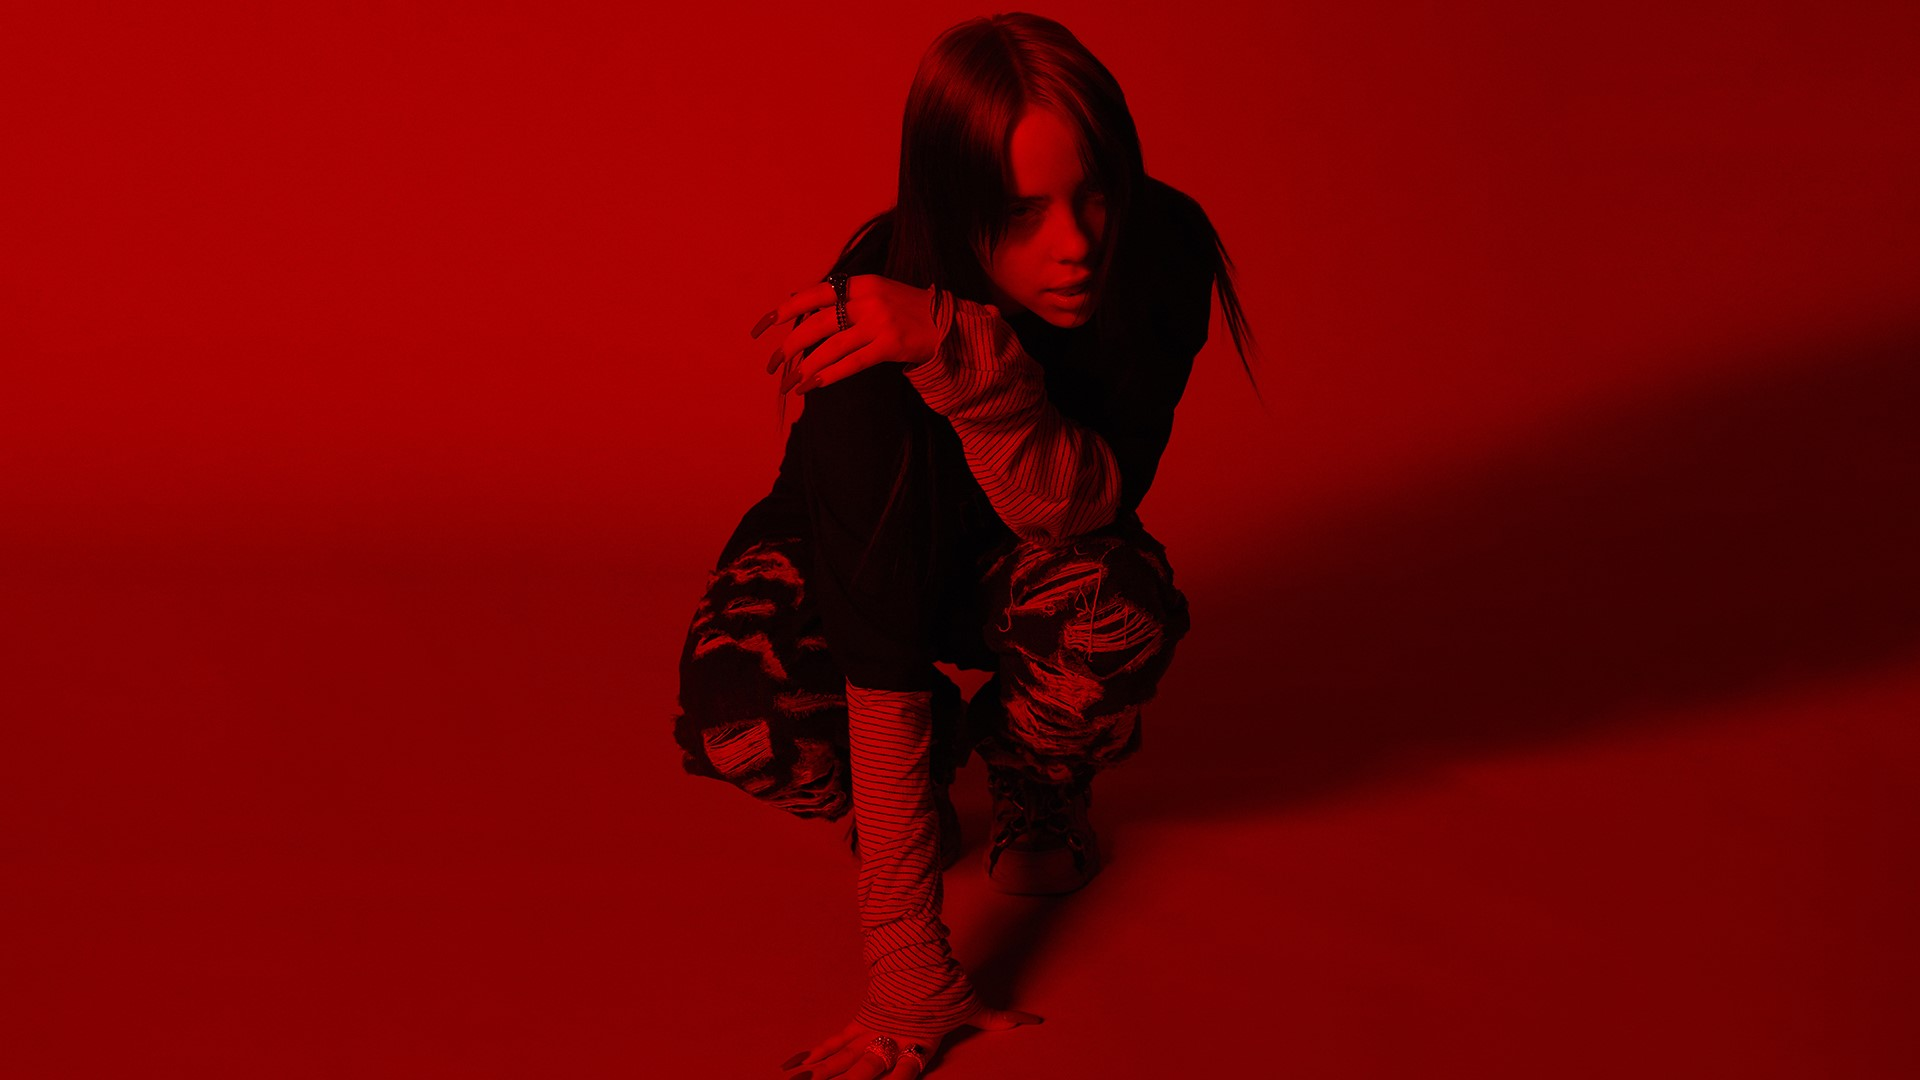 Billie Eilish will sing the new James Bond theme for No Time To Die